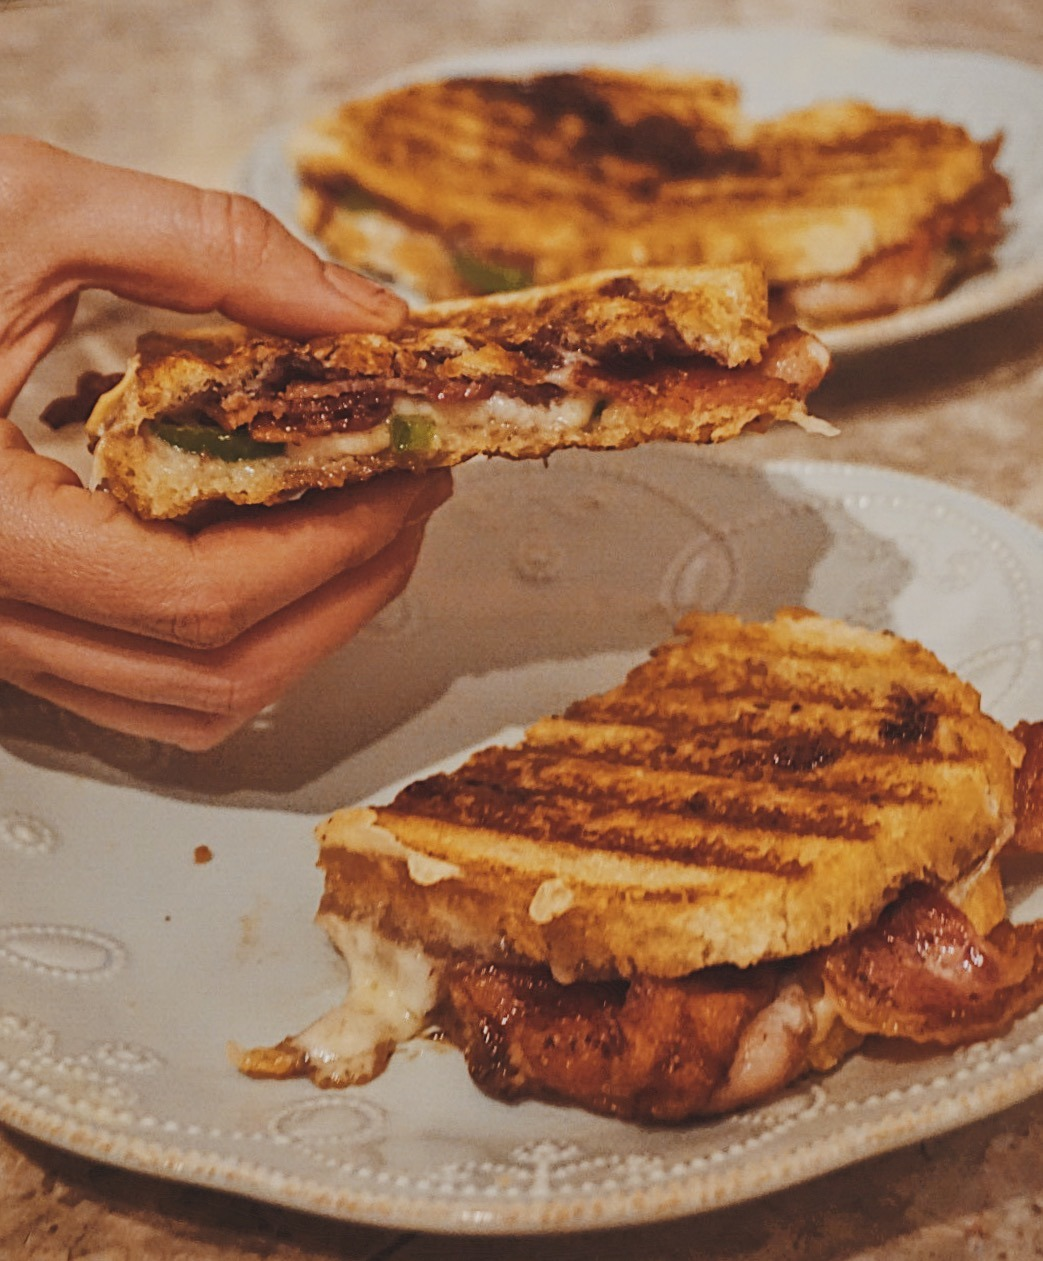 Blackberry Bacon Grilled Cheese Sandwich